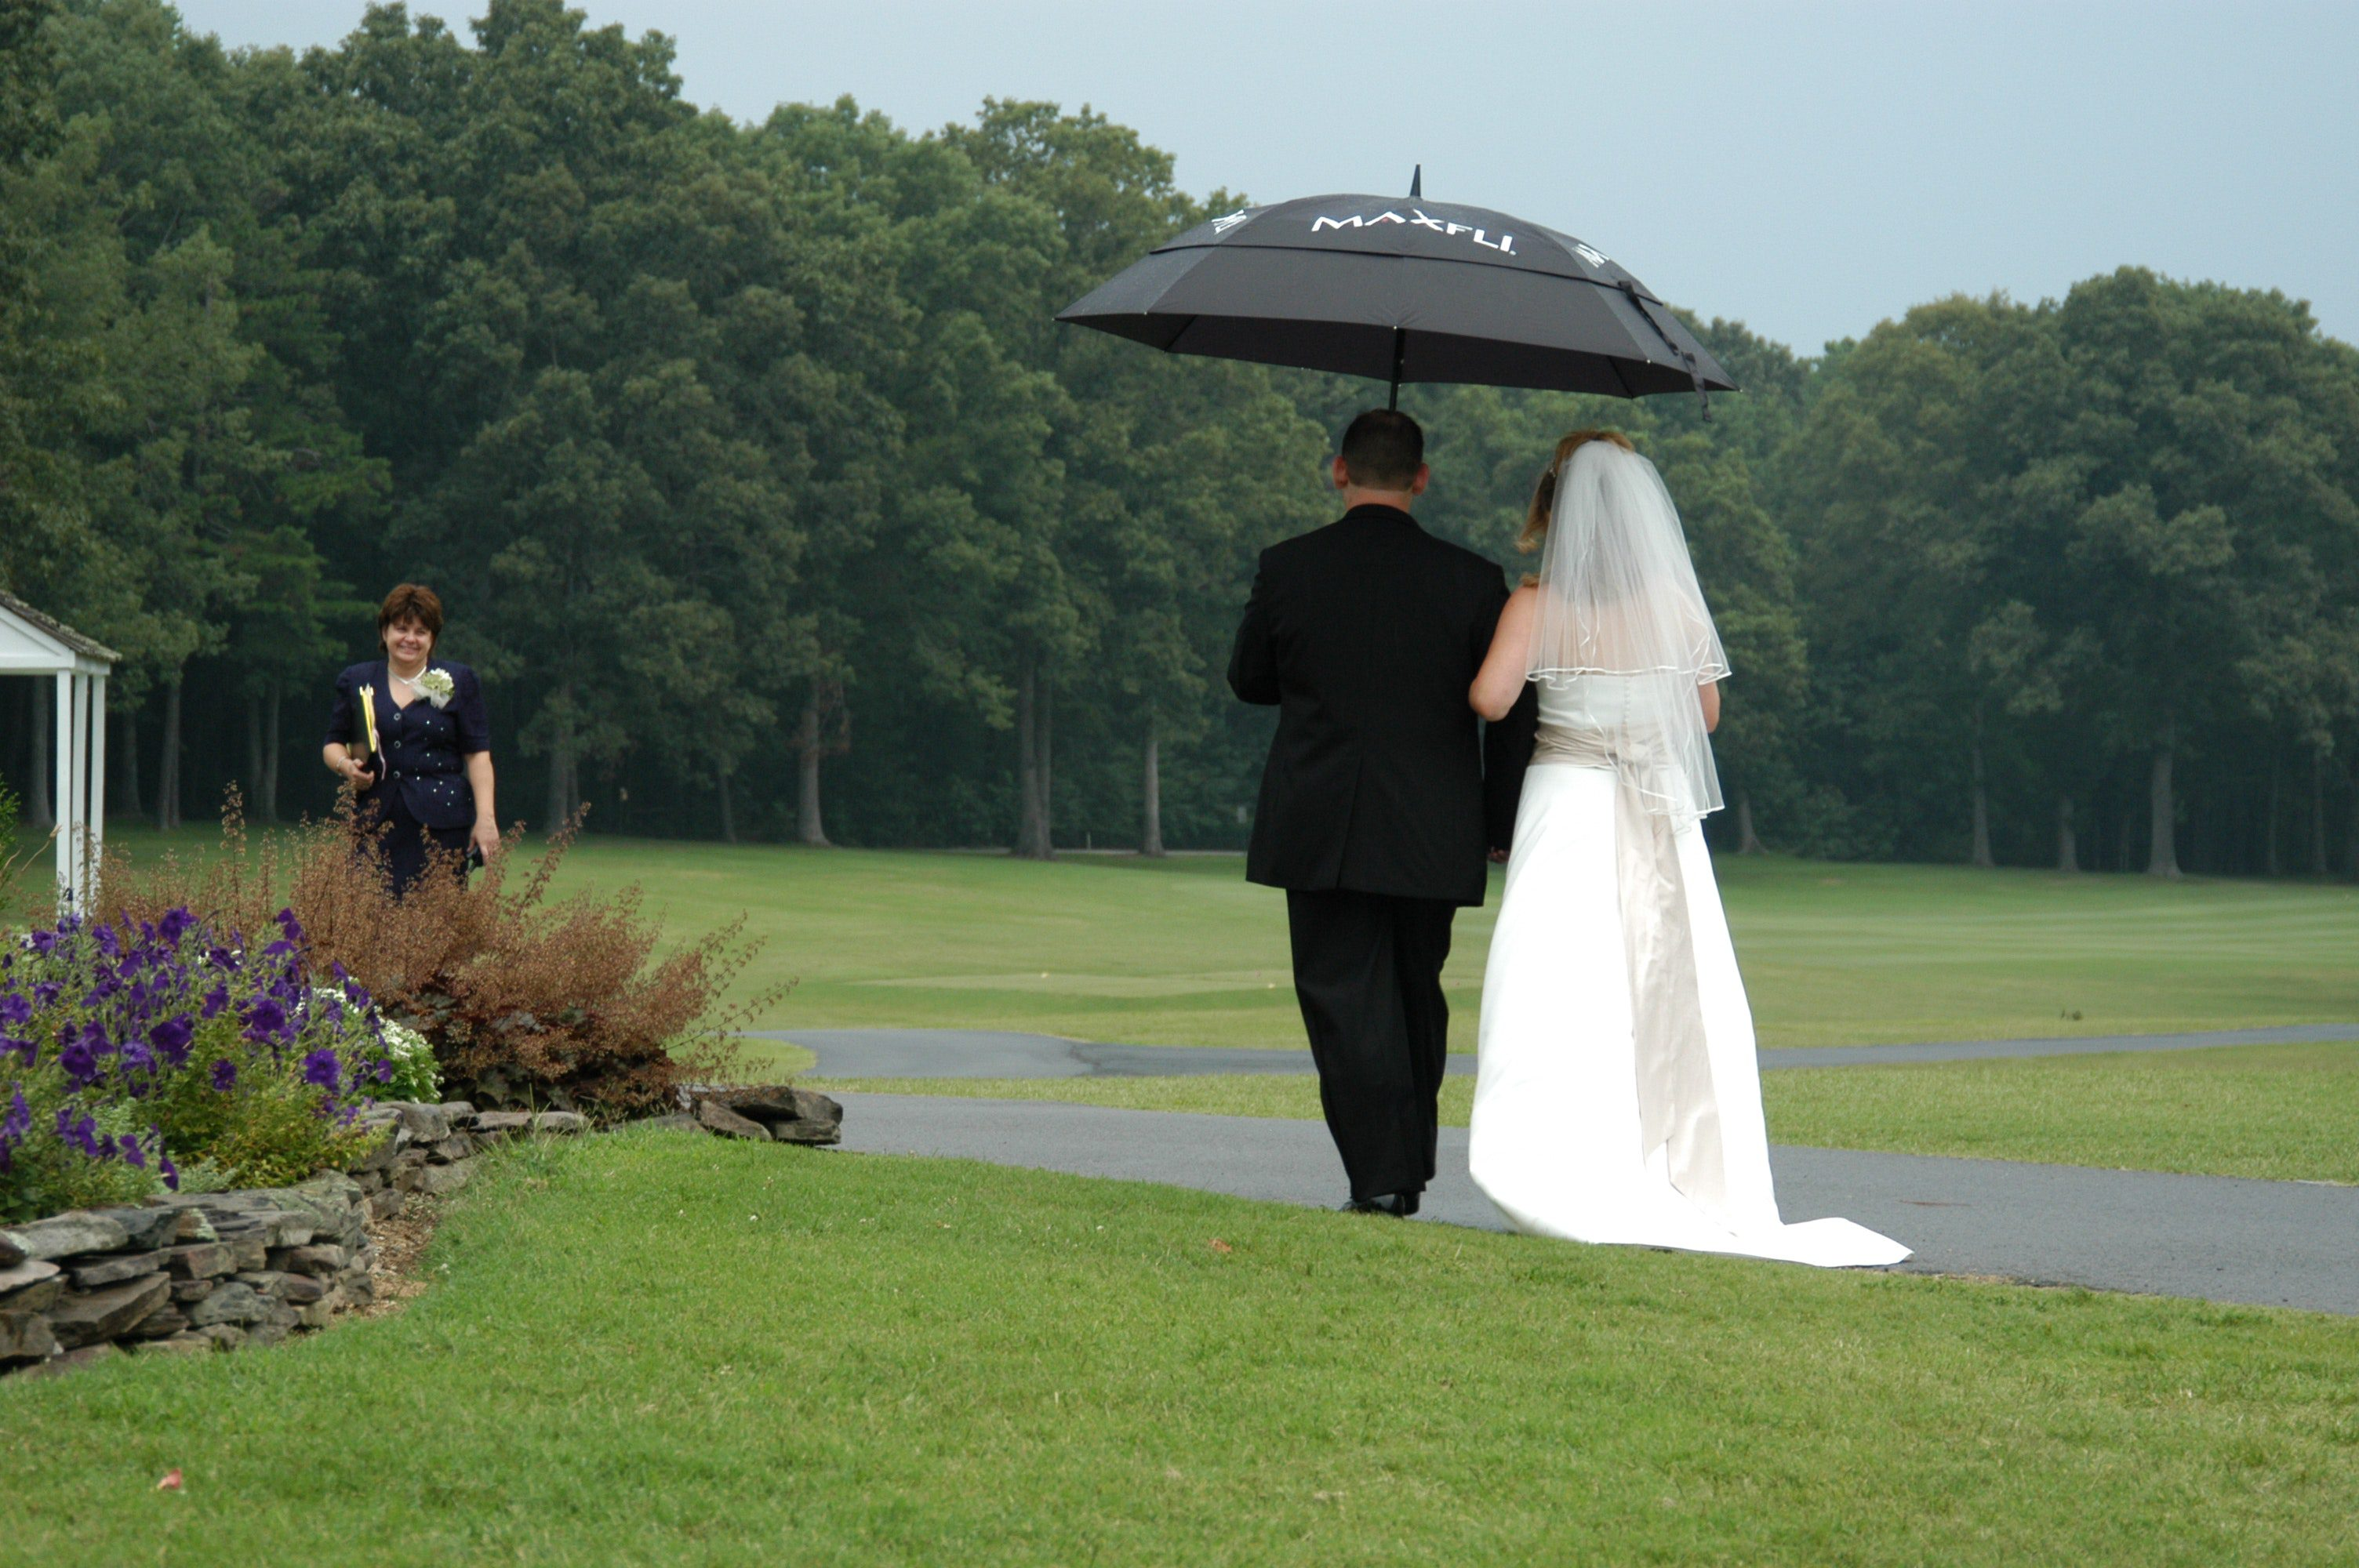 Bride and Groom walking in the rain holding an umbrella